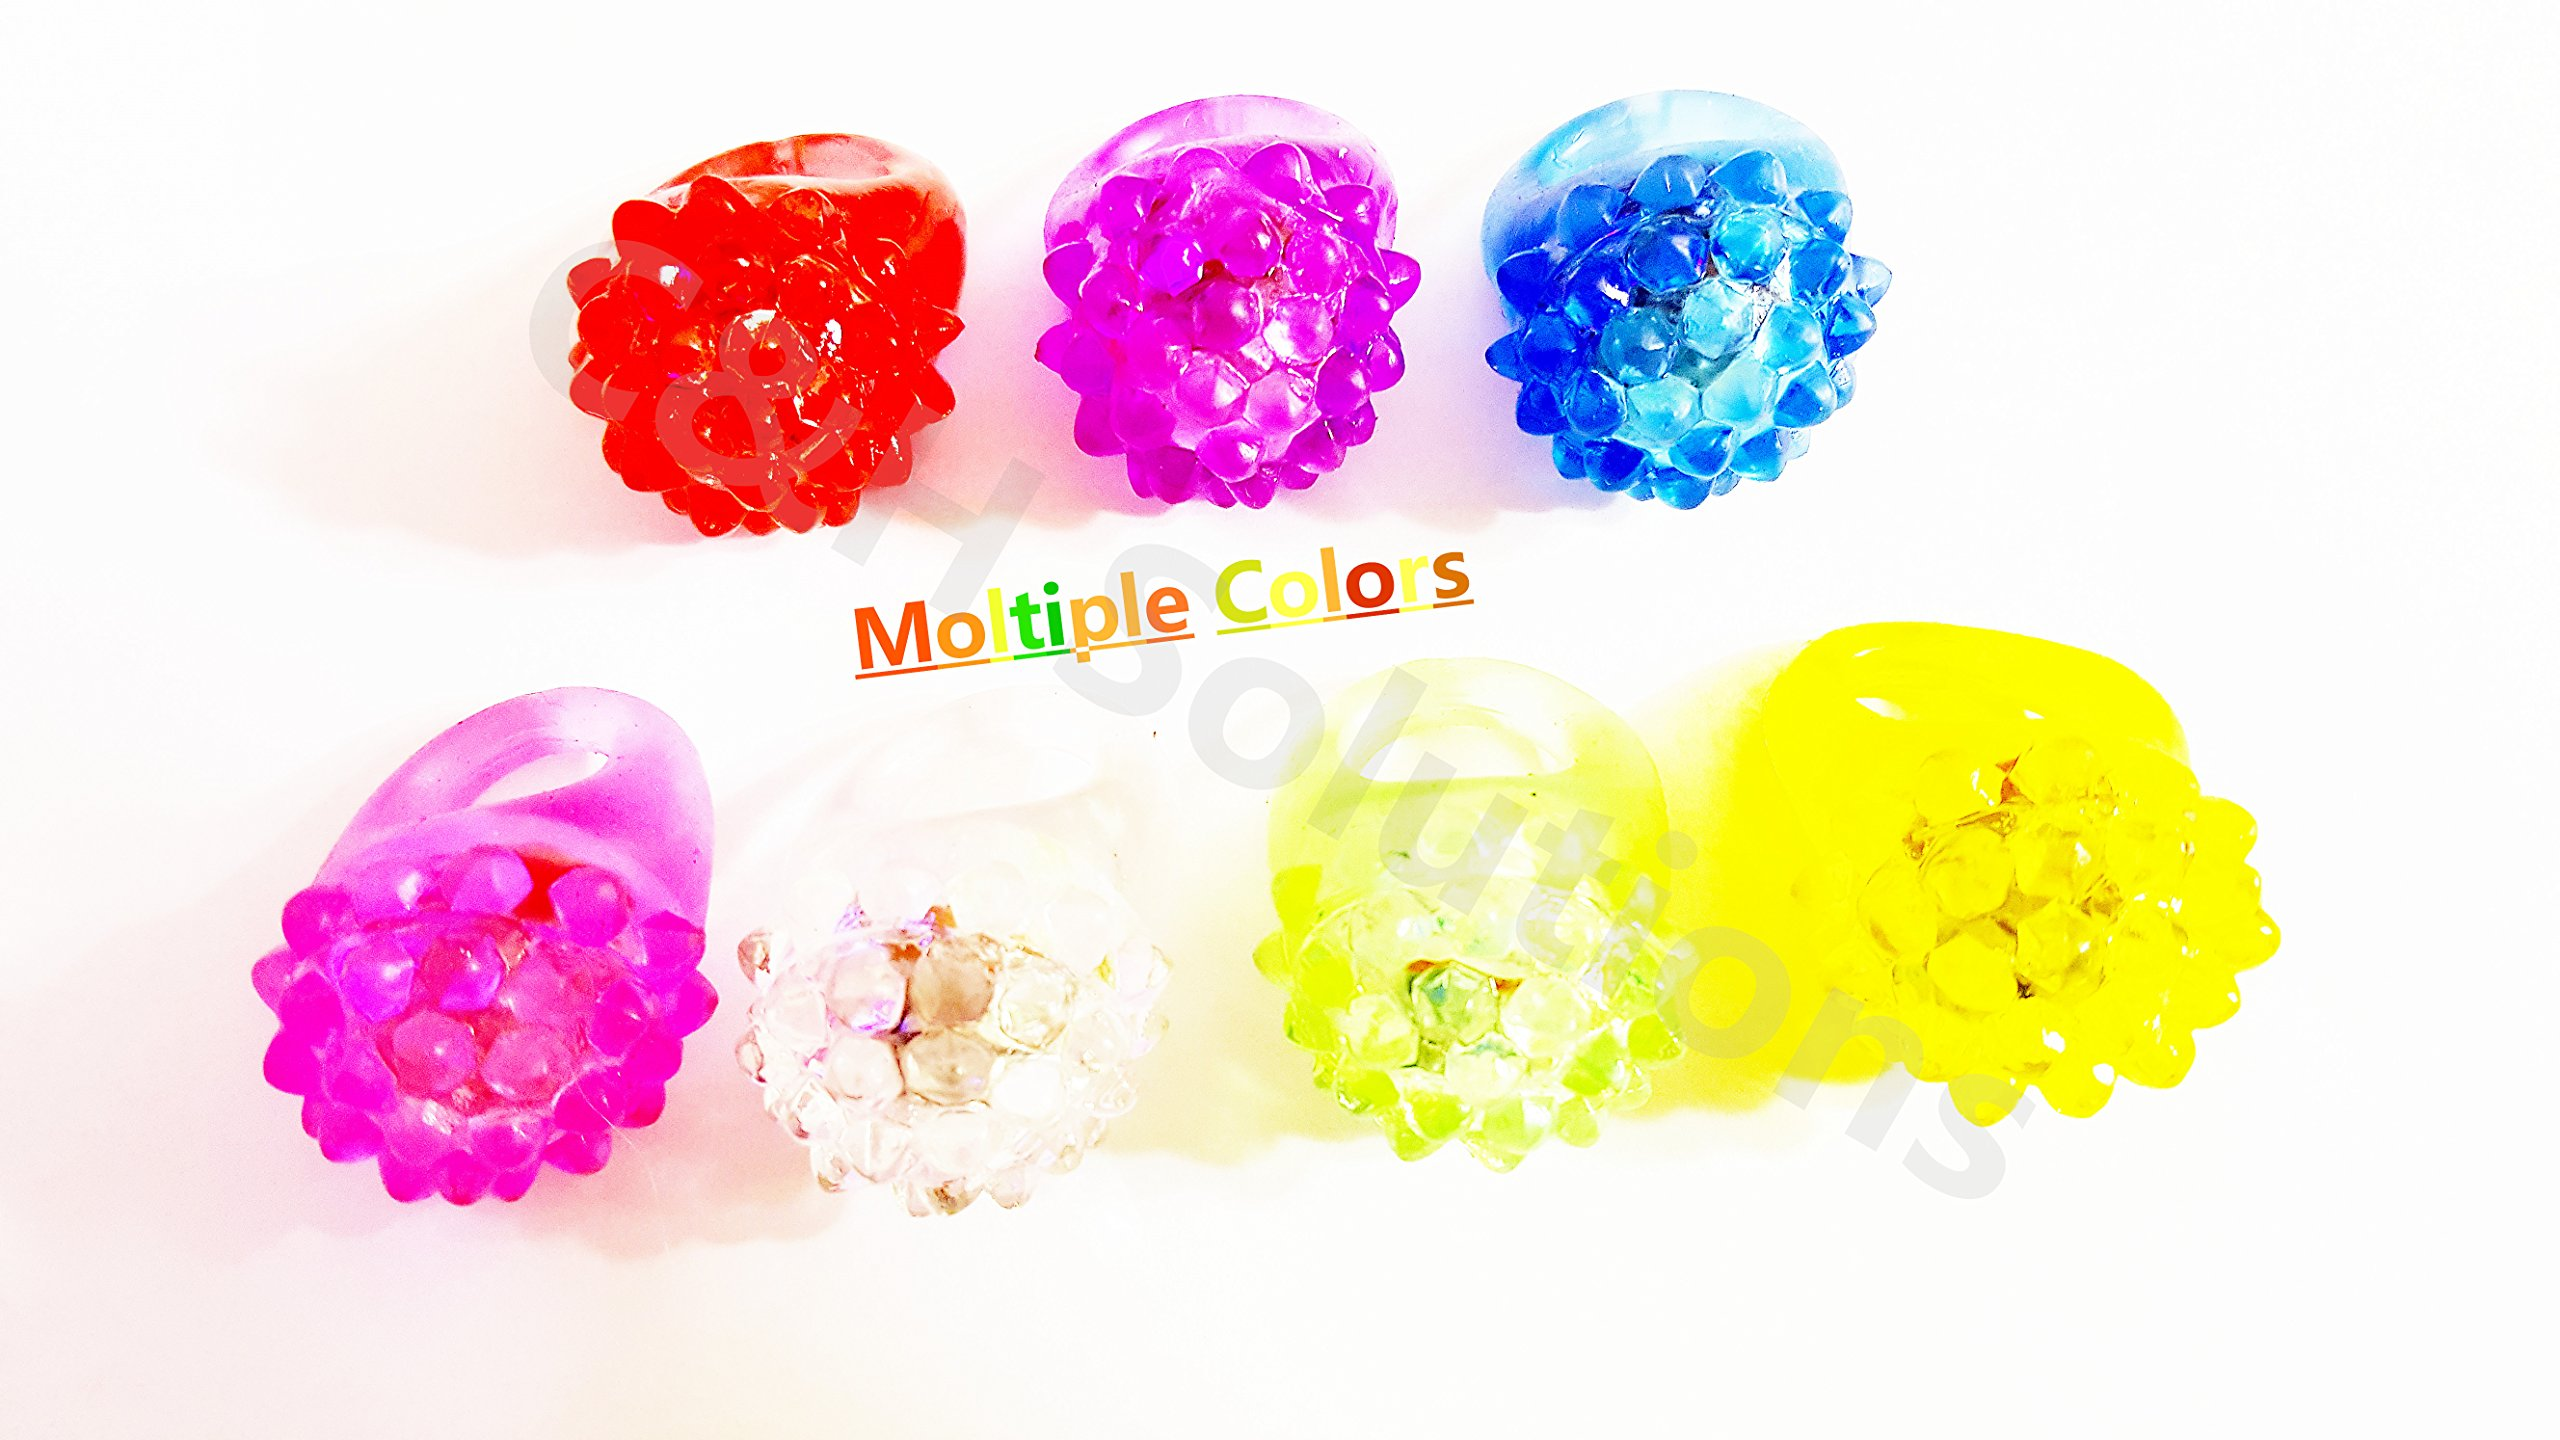 C&H Solutions Novelty 96 ct Flashing LED Bumpy Rings Blinking Soft Jelly Glow by C&H